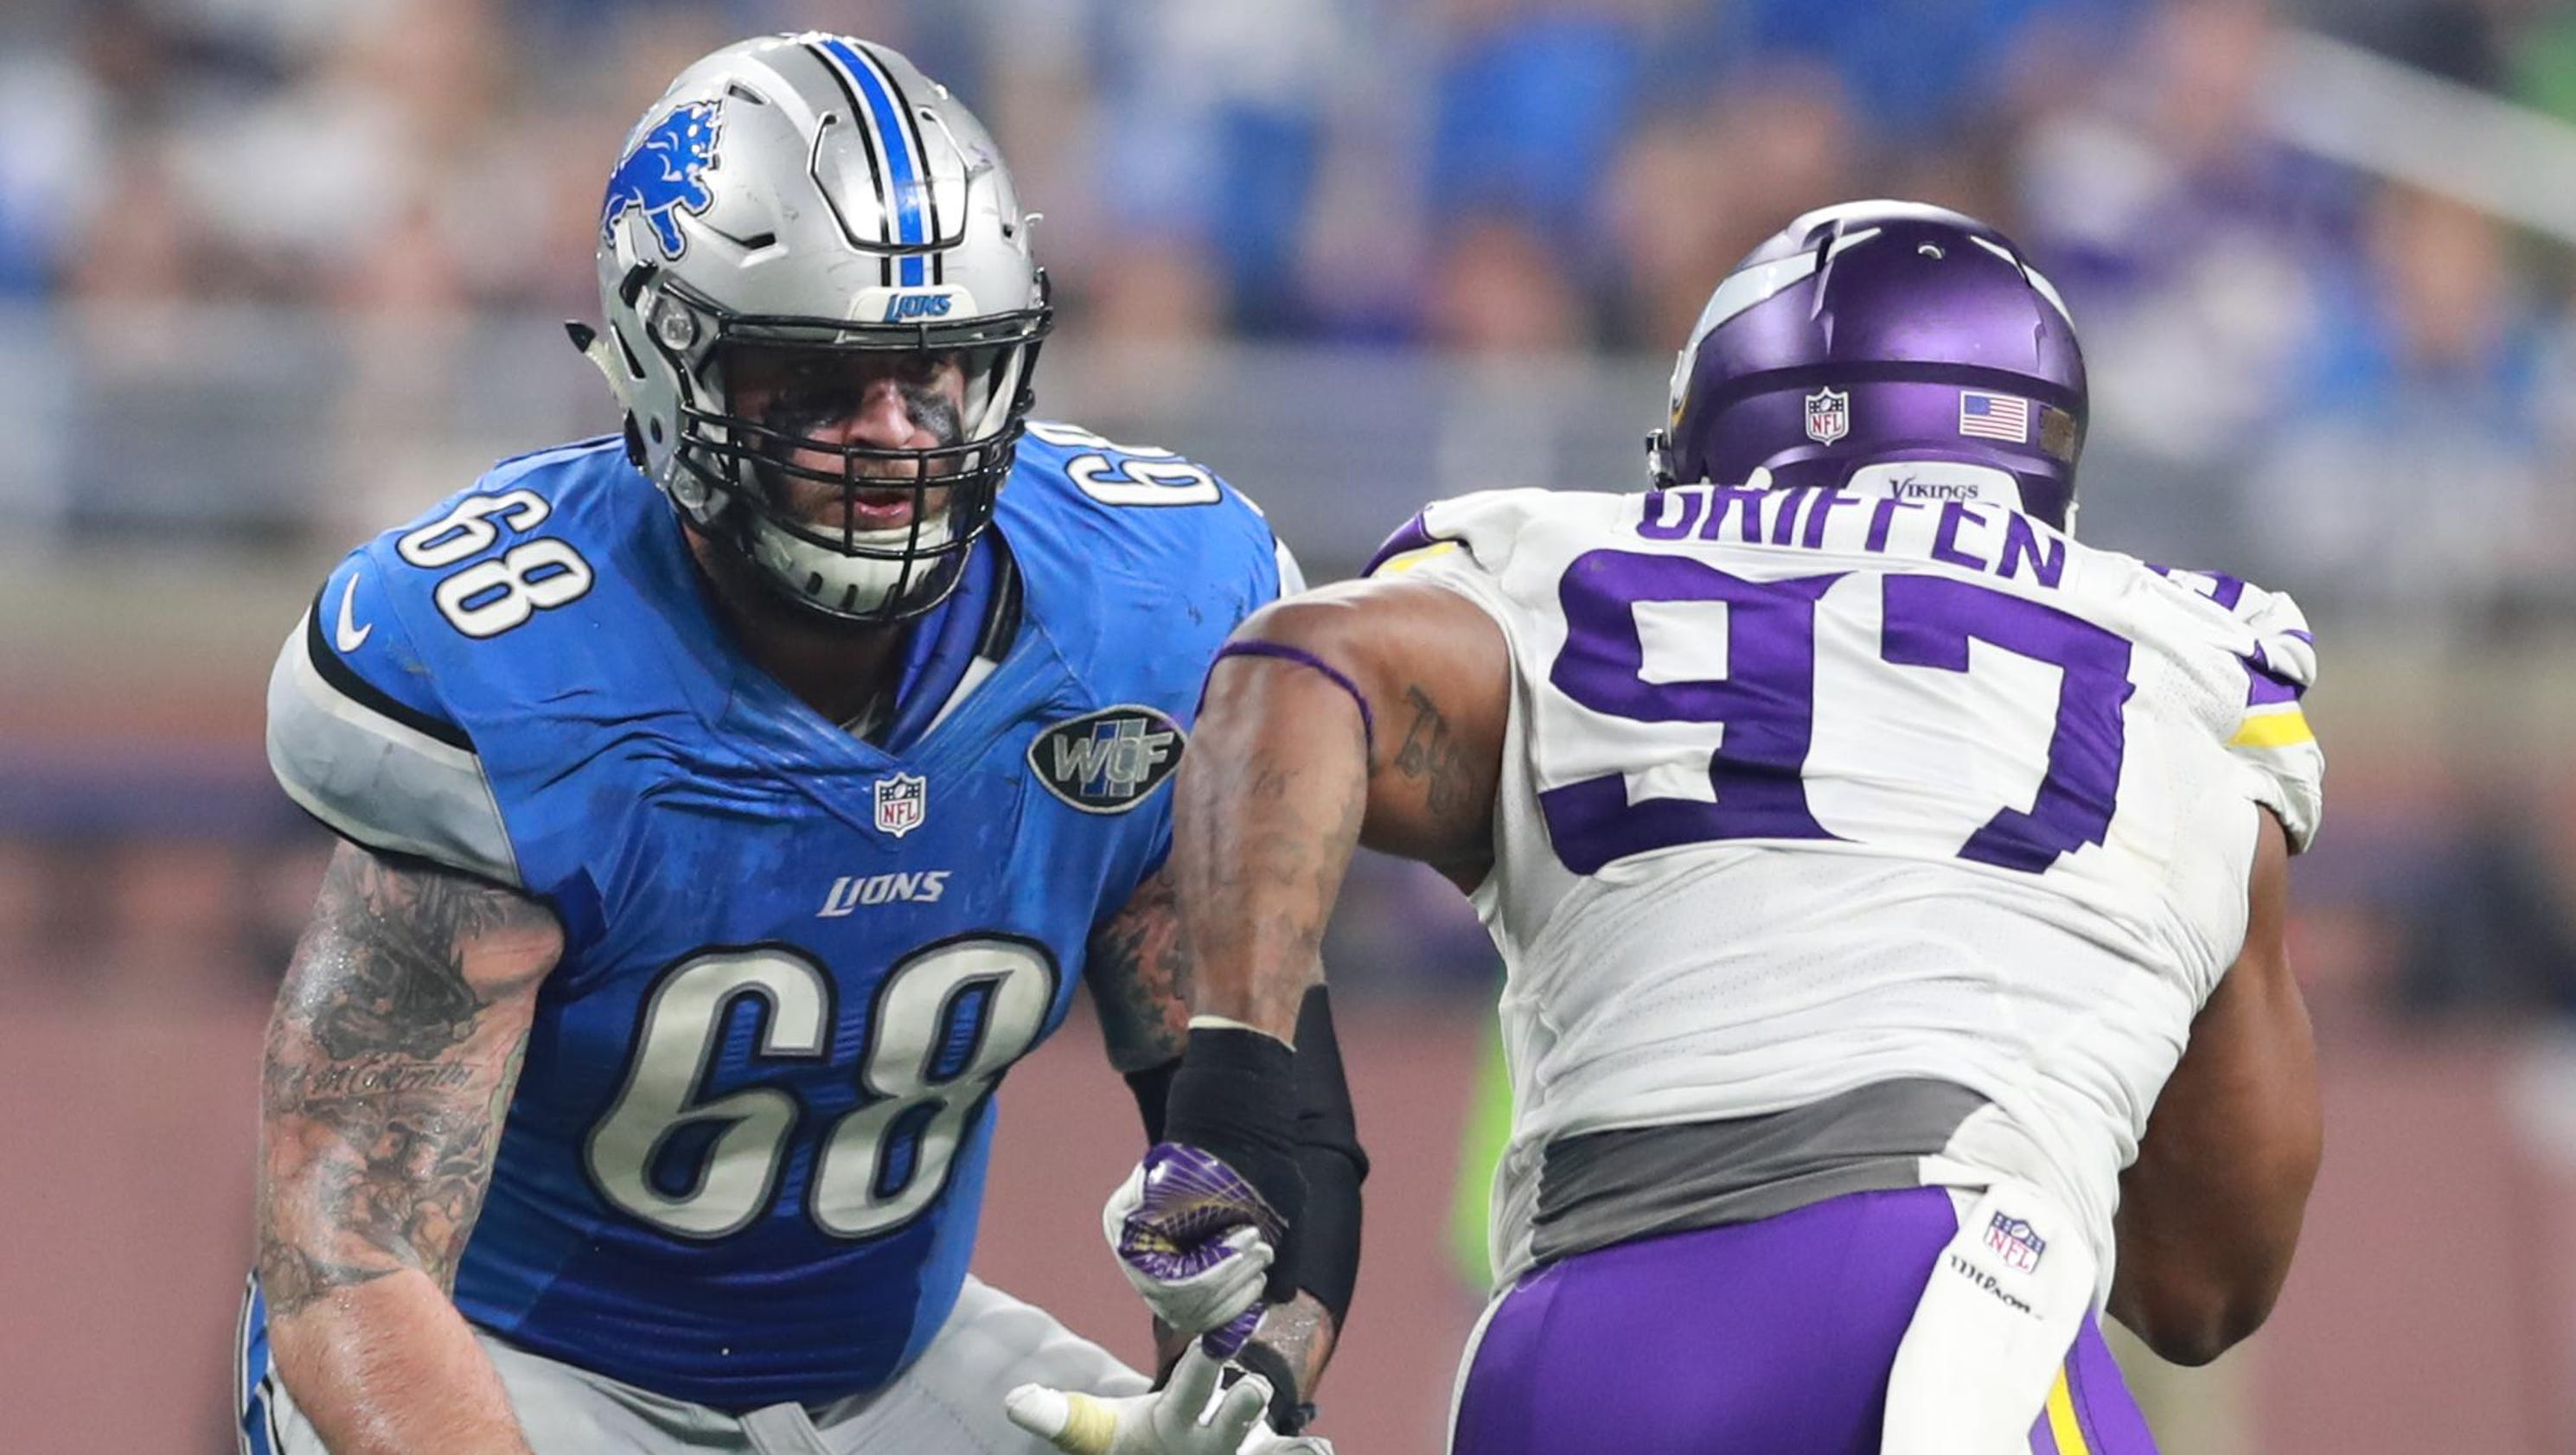 57e506df2 Lions offensive tackle Taylor Decker suffered a torn labrum, according to  an NFL Network report, and is expected to be out of the lineup the next  four to ...